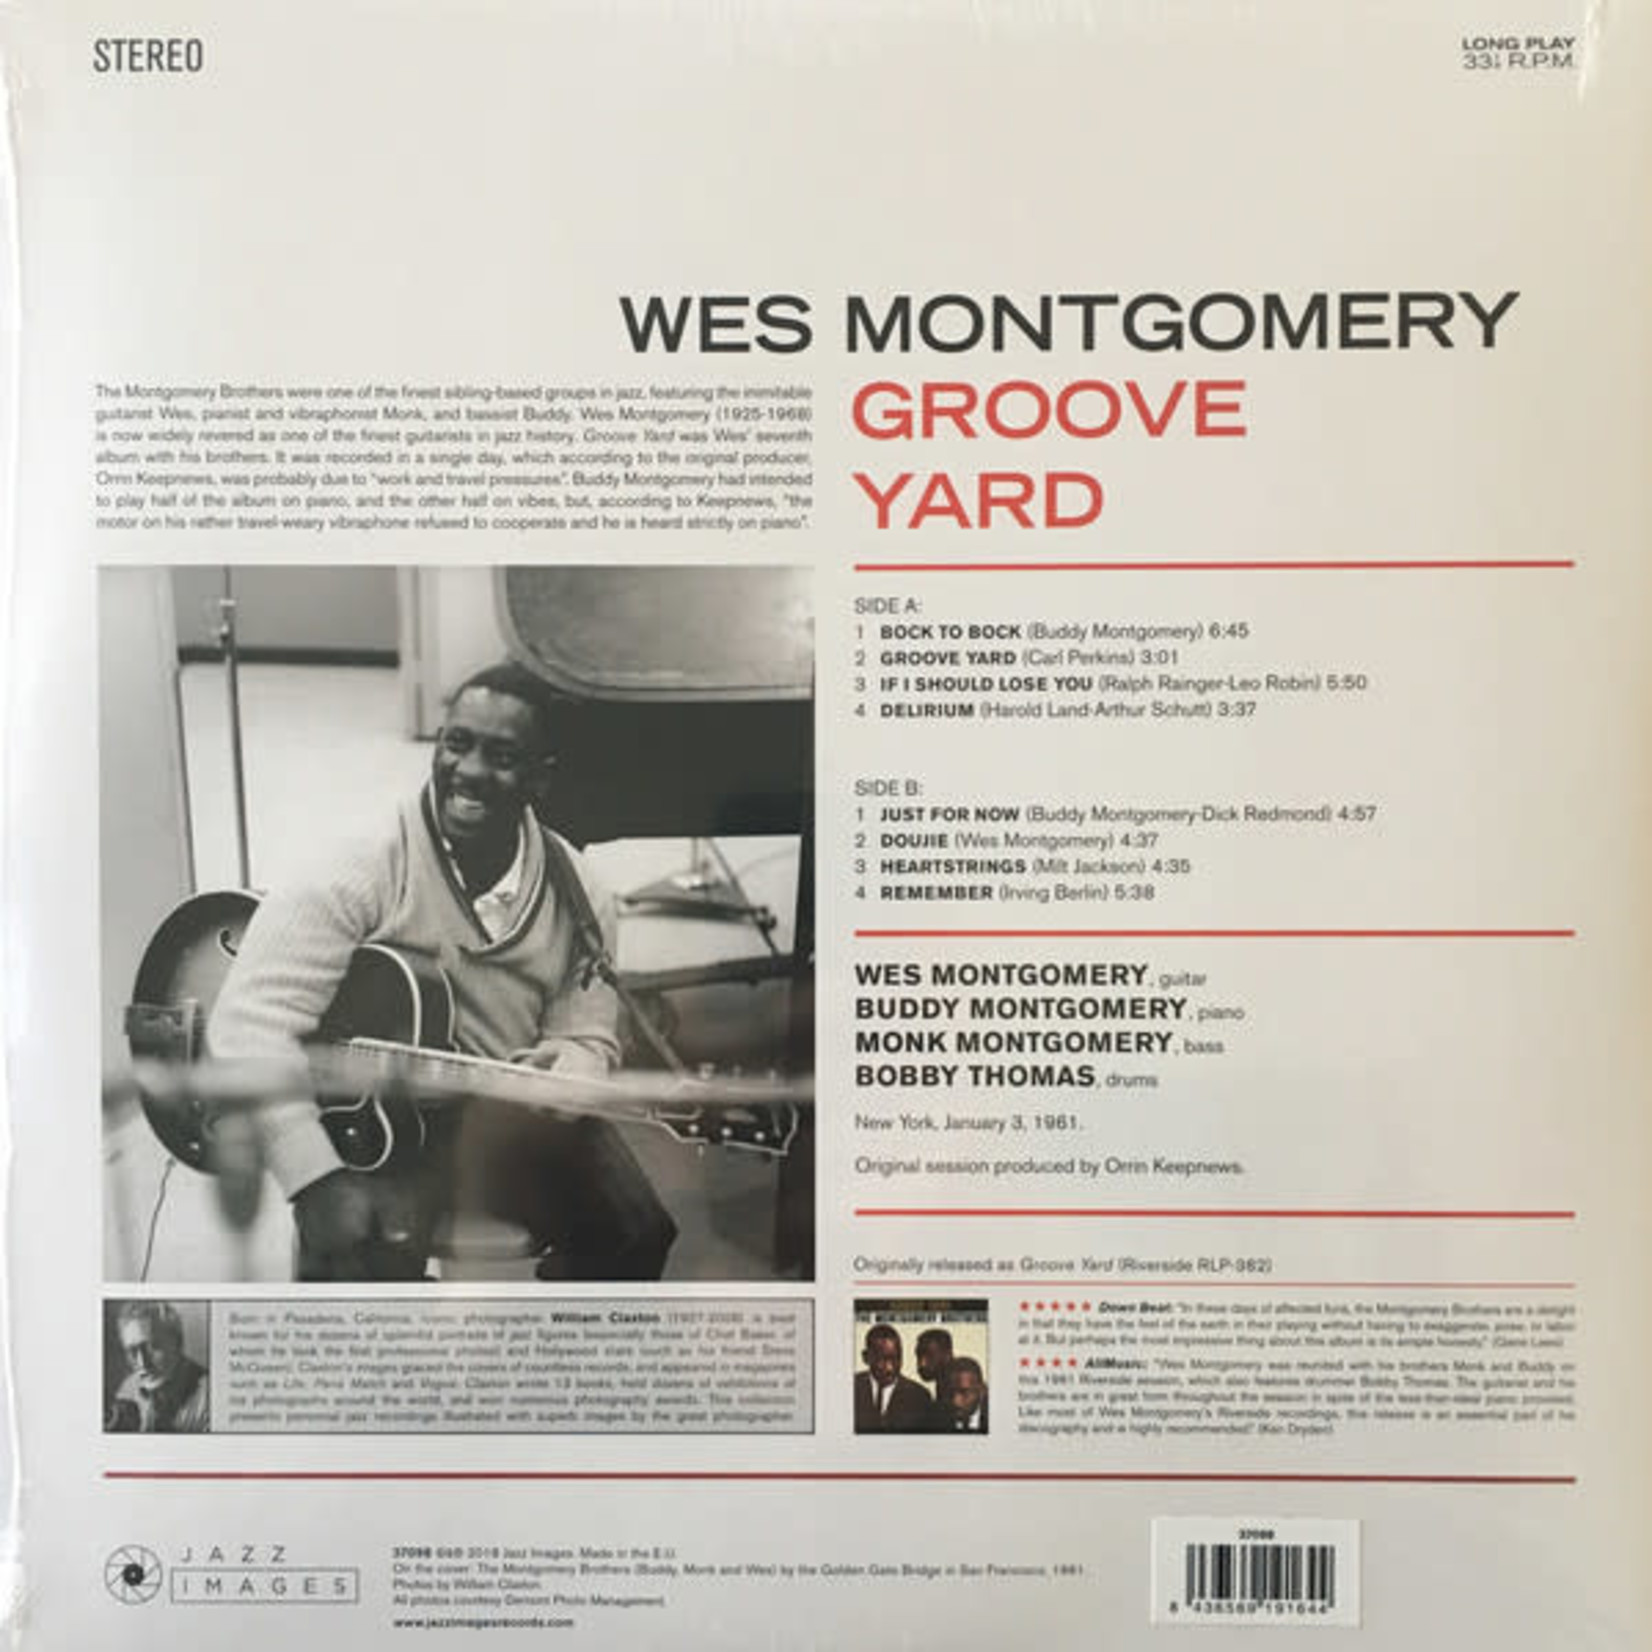 WES MONTGOMERY GROOVE YARD